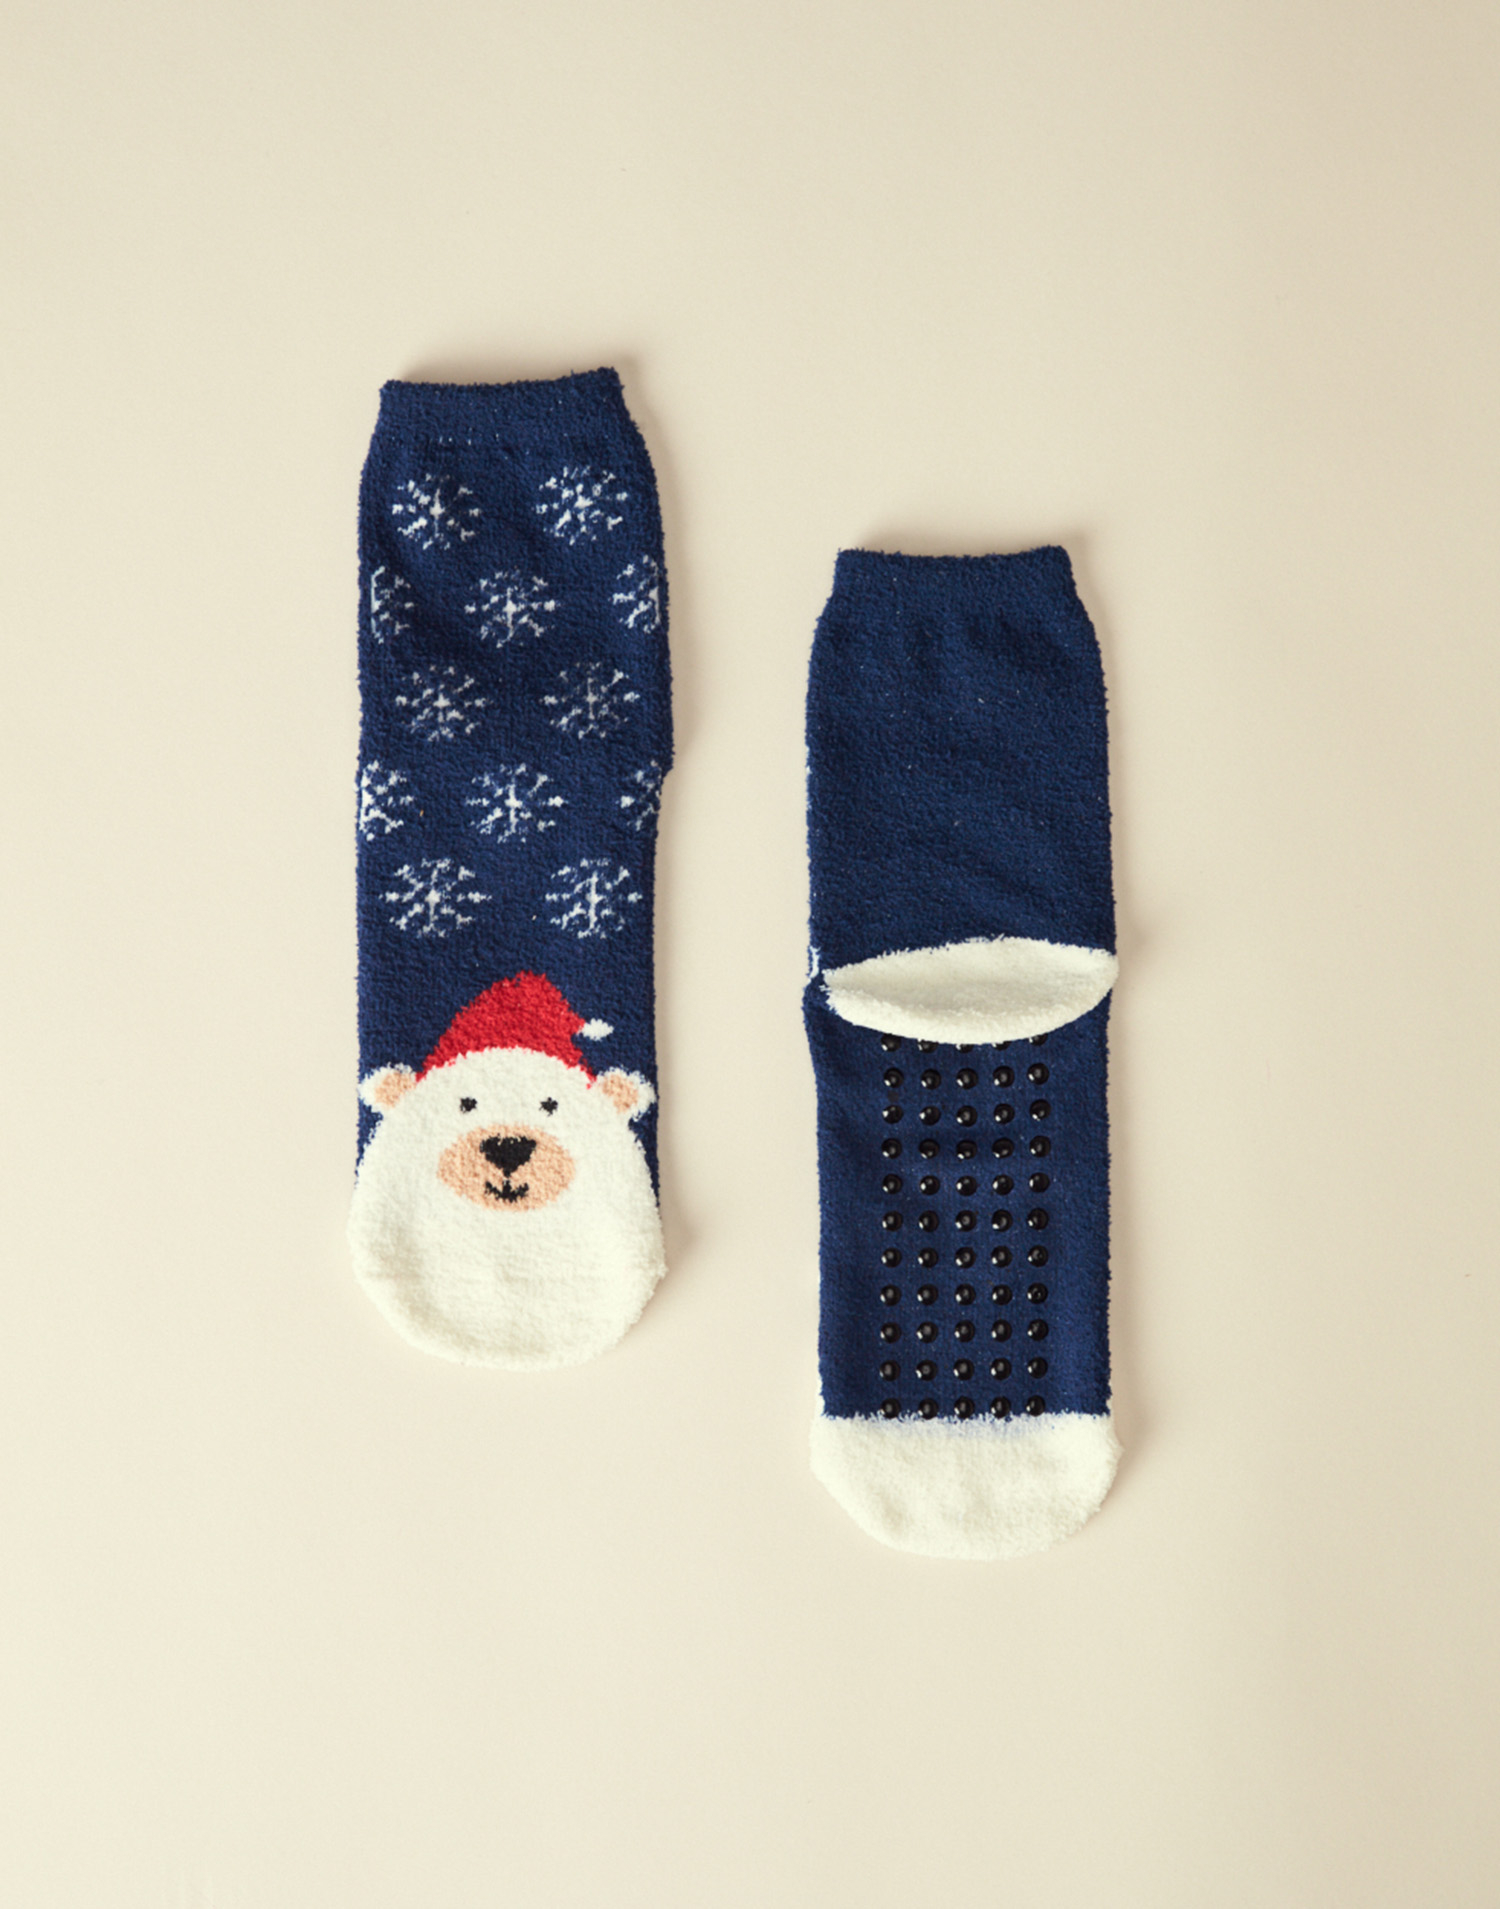 Polar bear men's socks